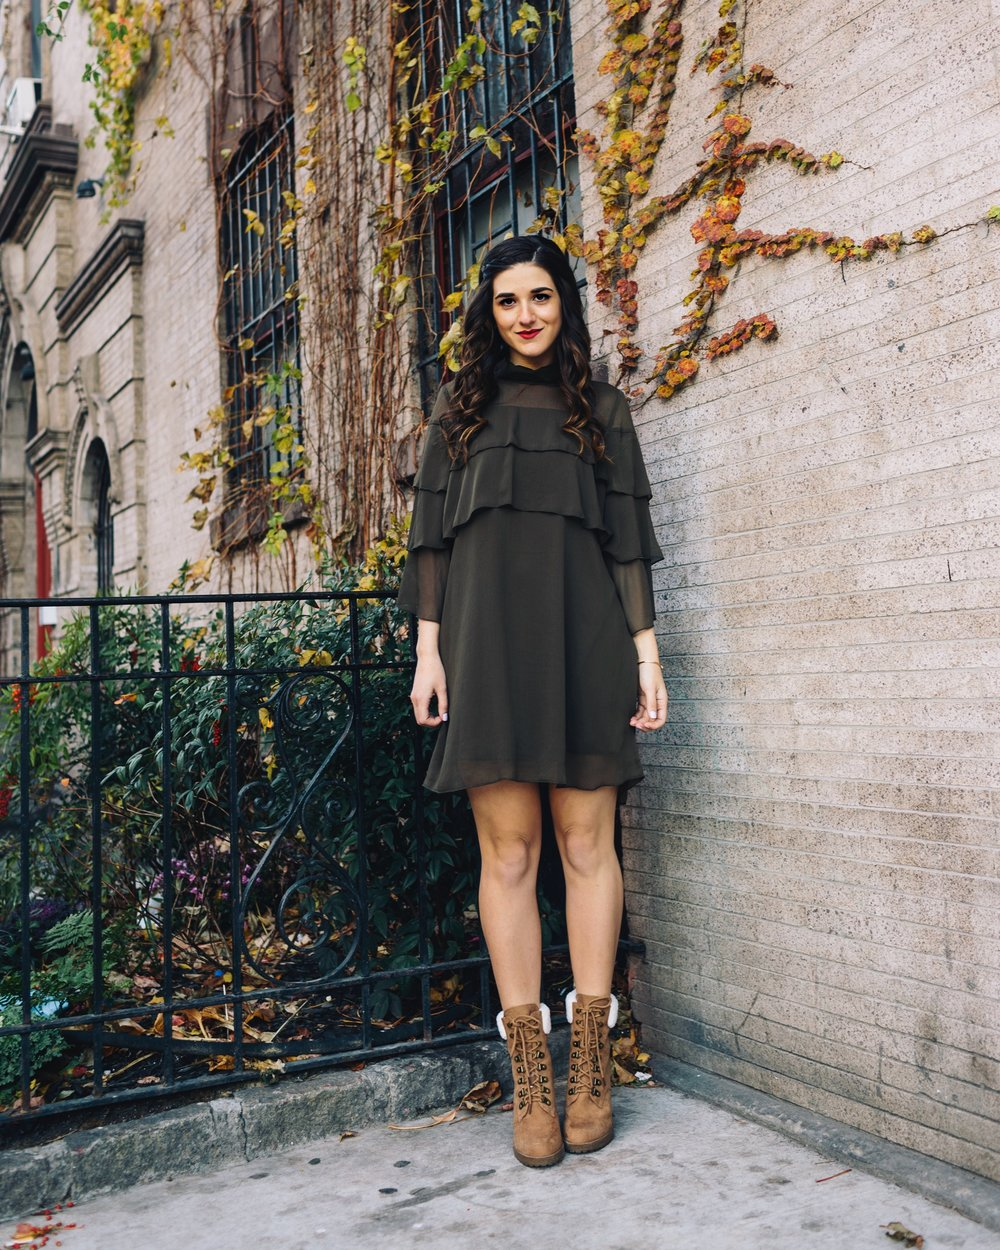 Olive Green Ruffle Dress + Lace Up Booties Payless Louboutins & Love Fashion Blog Esther Santer NYC Street Style Blogger Outfit OOTD Trendy Shoes Inspo Girly Fall Winter Hair Shopping Affordable Boots  Photoshoot Clothes Wear Bracelet Pretty Beautiful.JPG